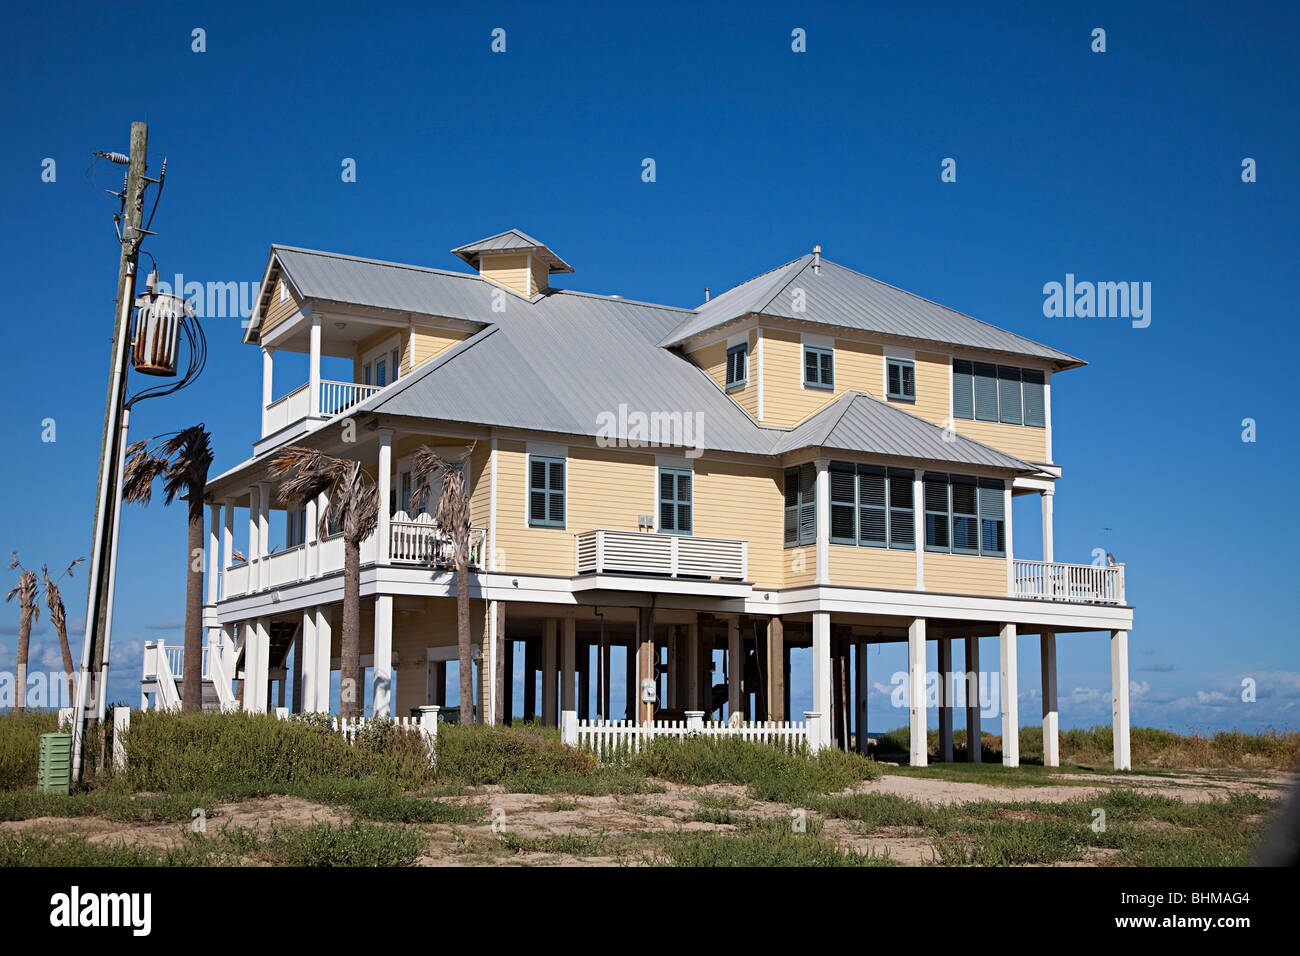 Wooden house on stilts on beach front galveston texas usa for Coastal home builders texas